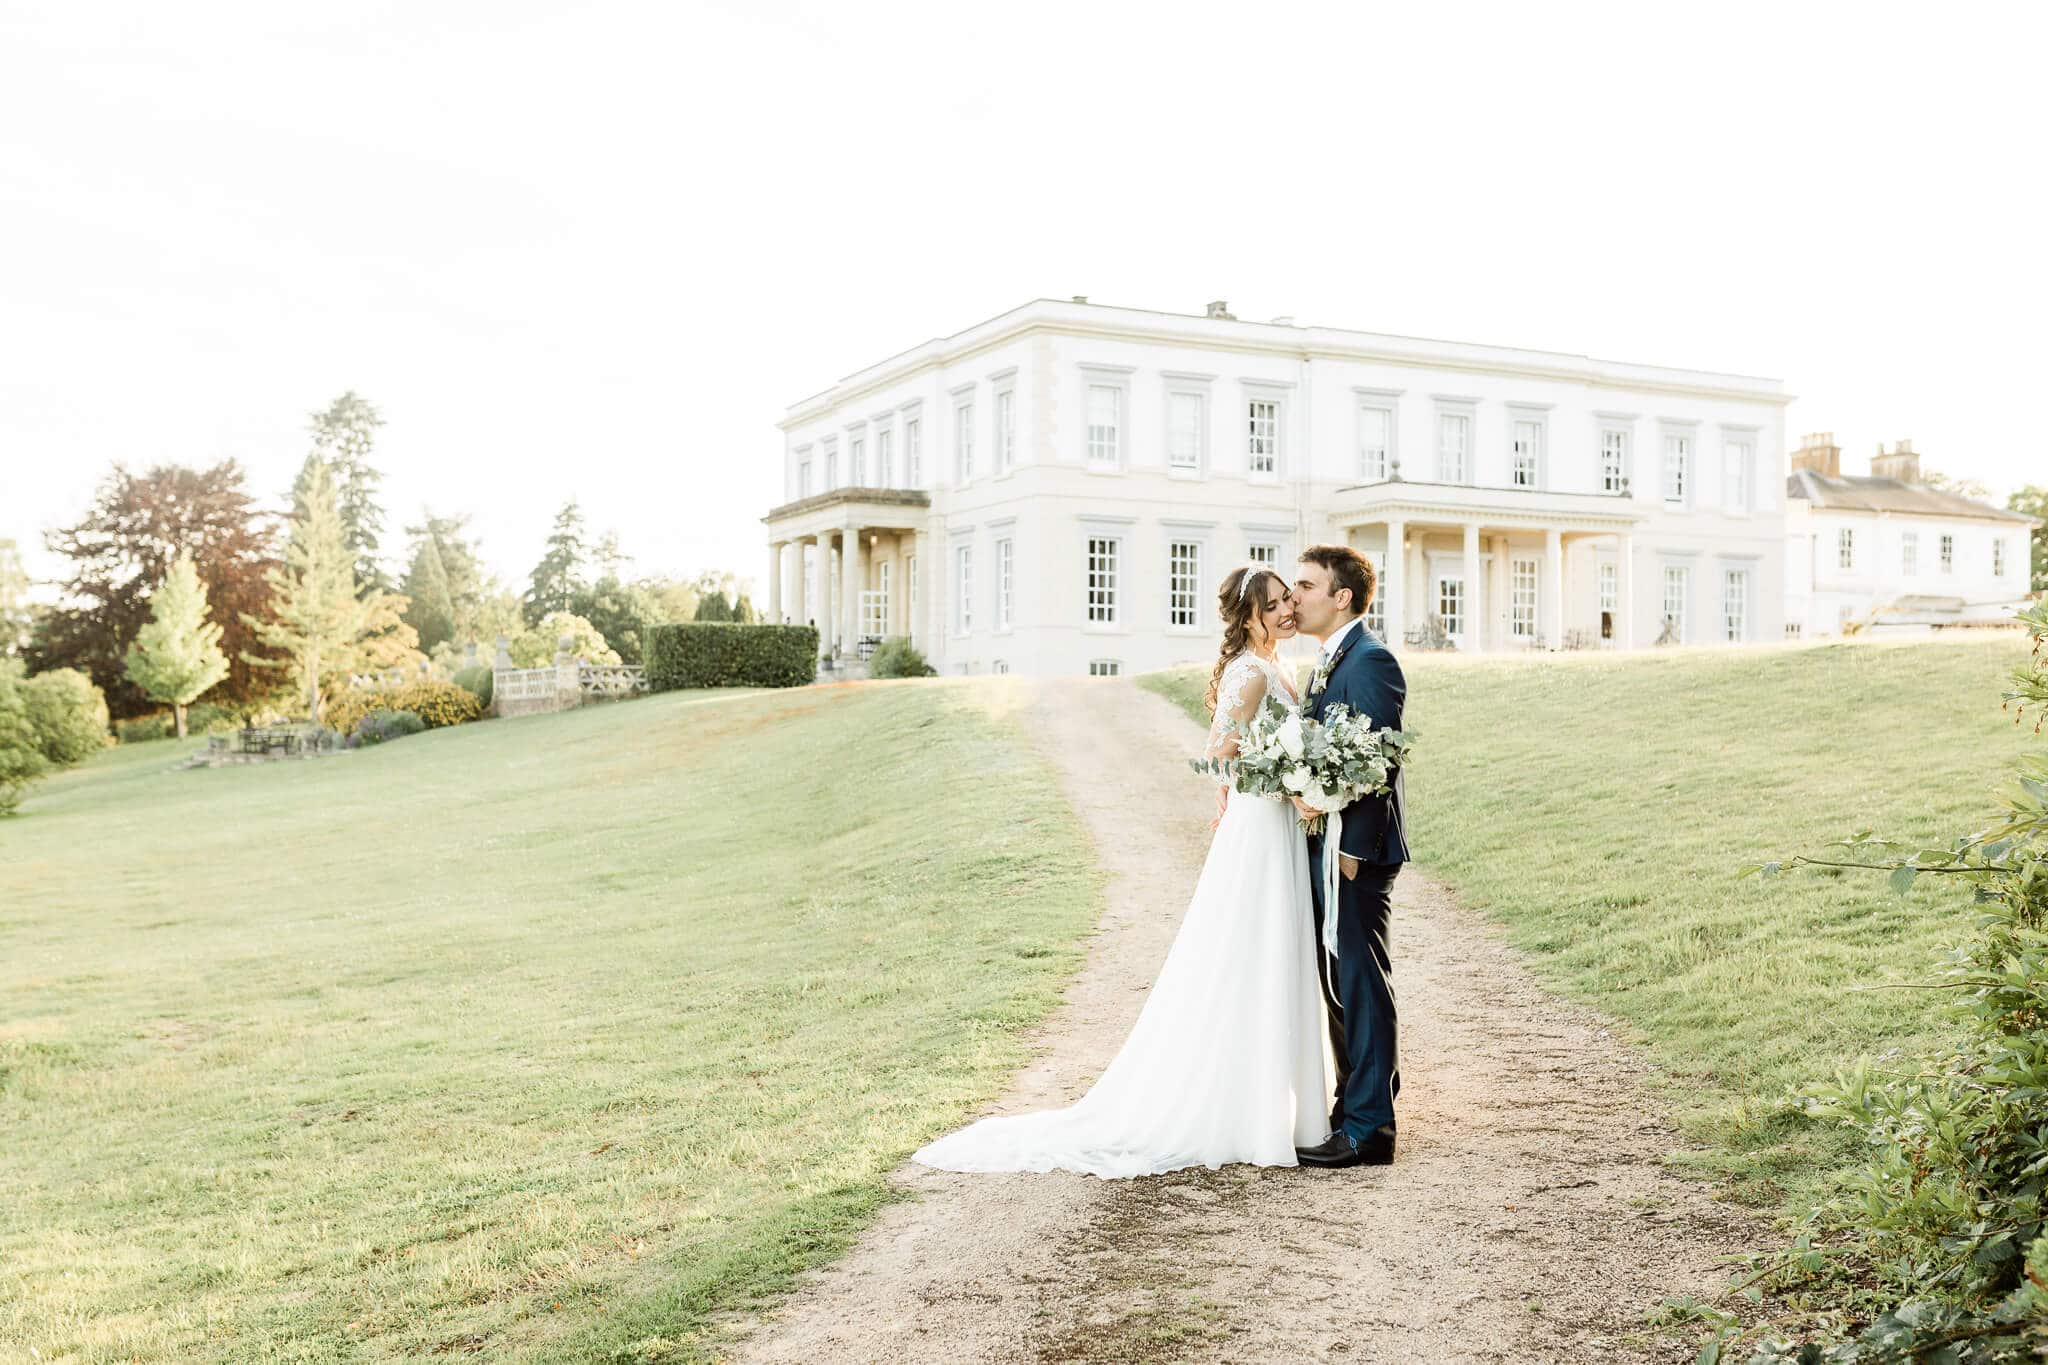 East Sussex wedding at Buxted Park Hotel in Uckfield